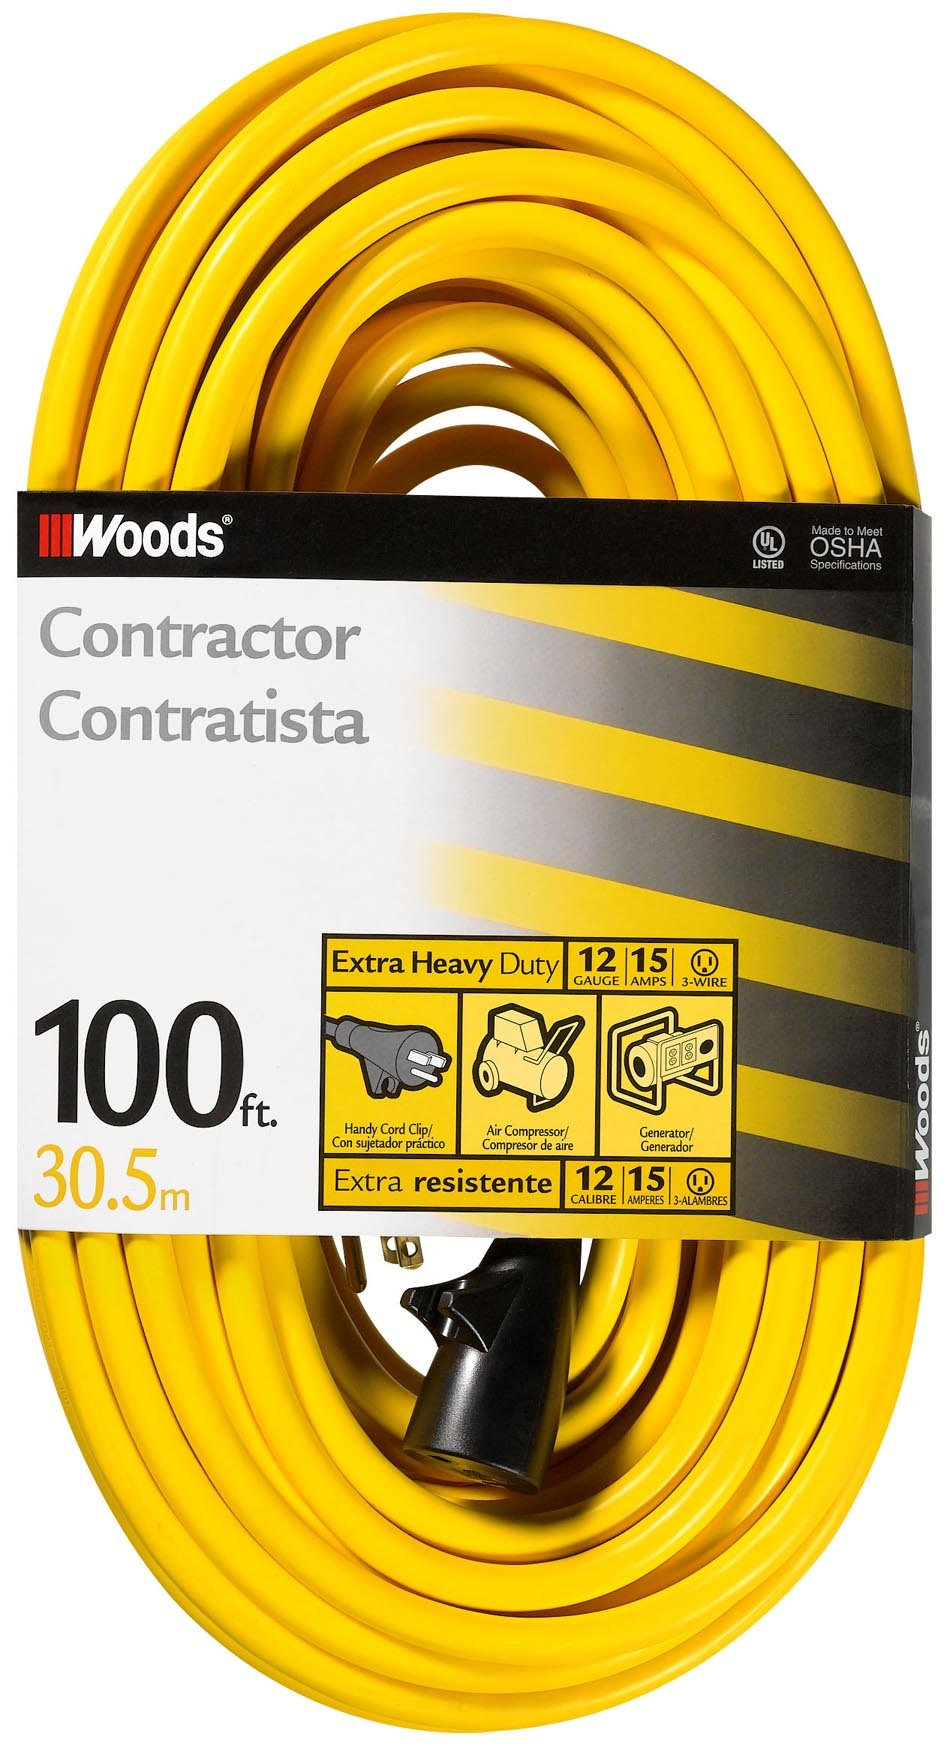 Woods 992555 12-Gauge Extra Heavy Duty 100 ft, Yellow 3 Prong Outdoor Extension Cord Clip, Water Resistant, Reinforced Blades, SJTW High Visibility Vinyl Jacket, Foot